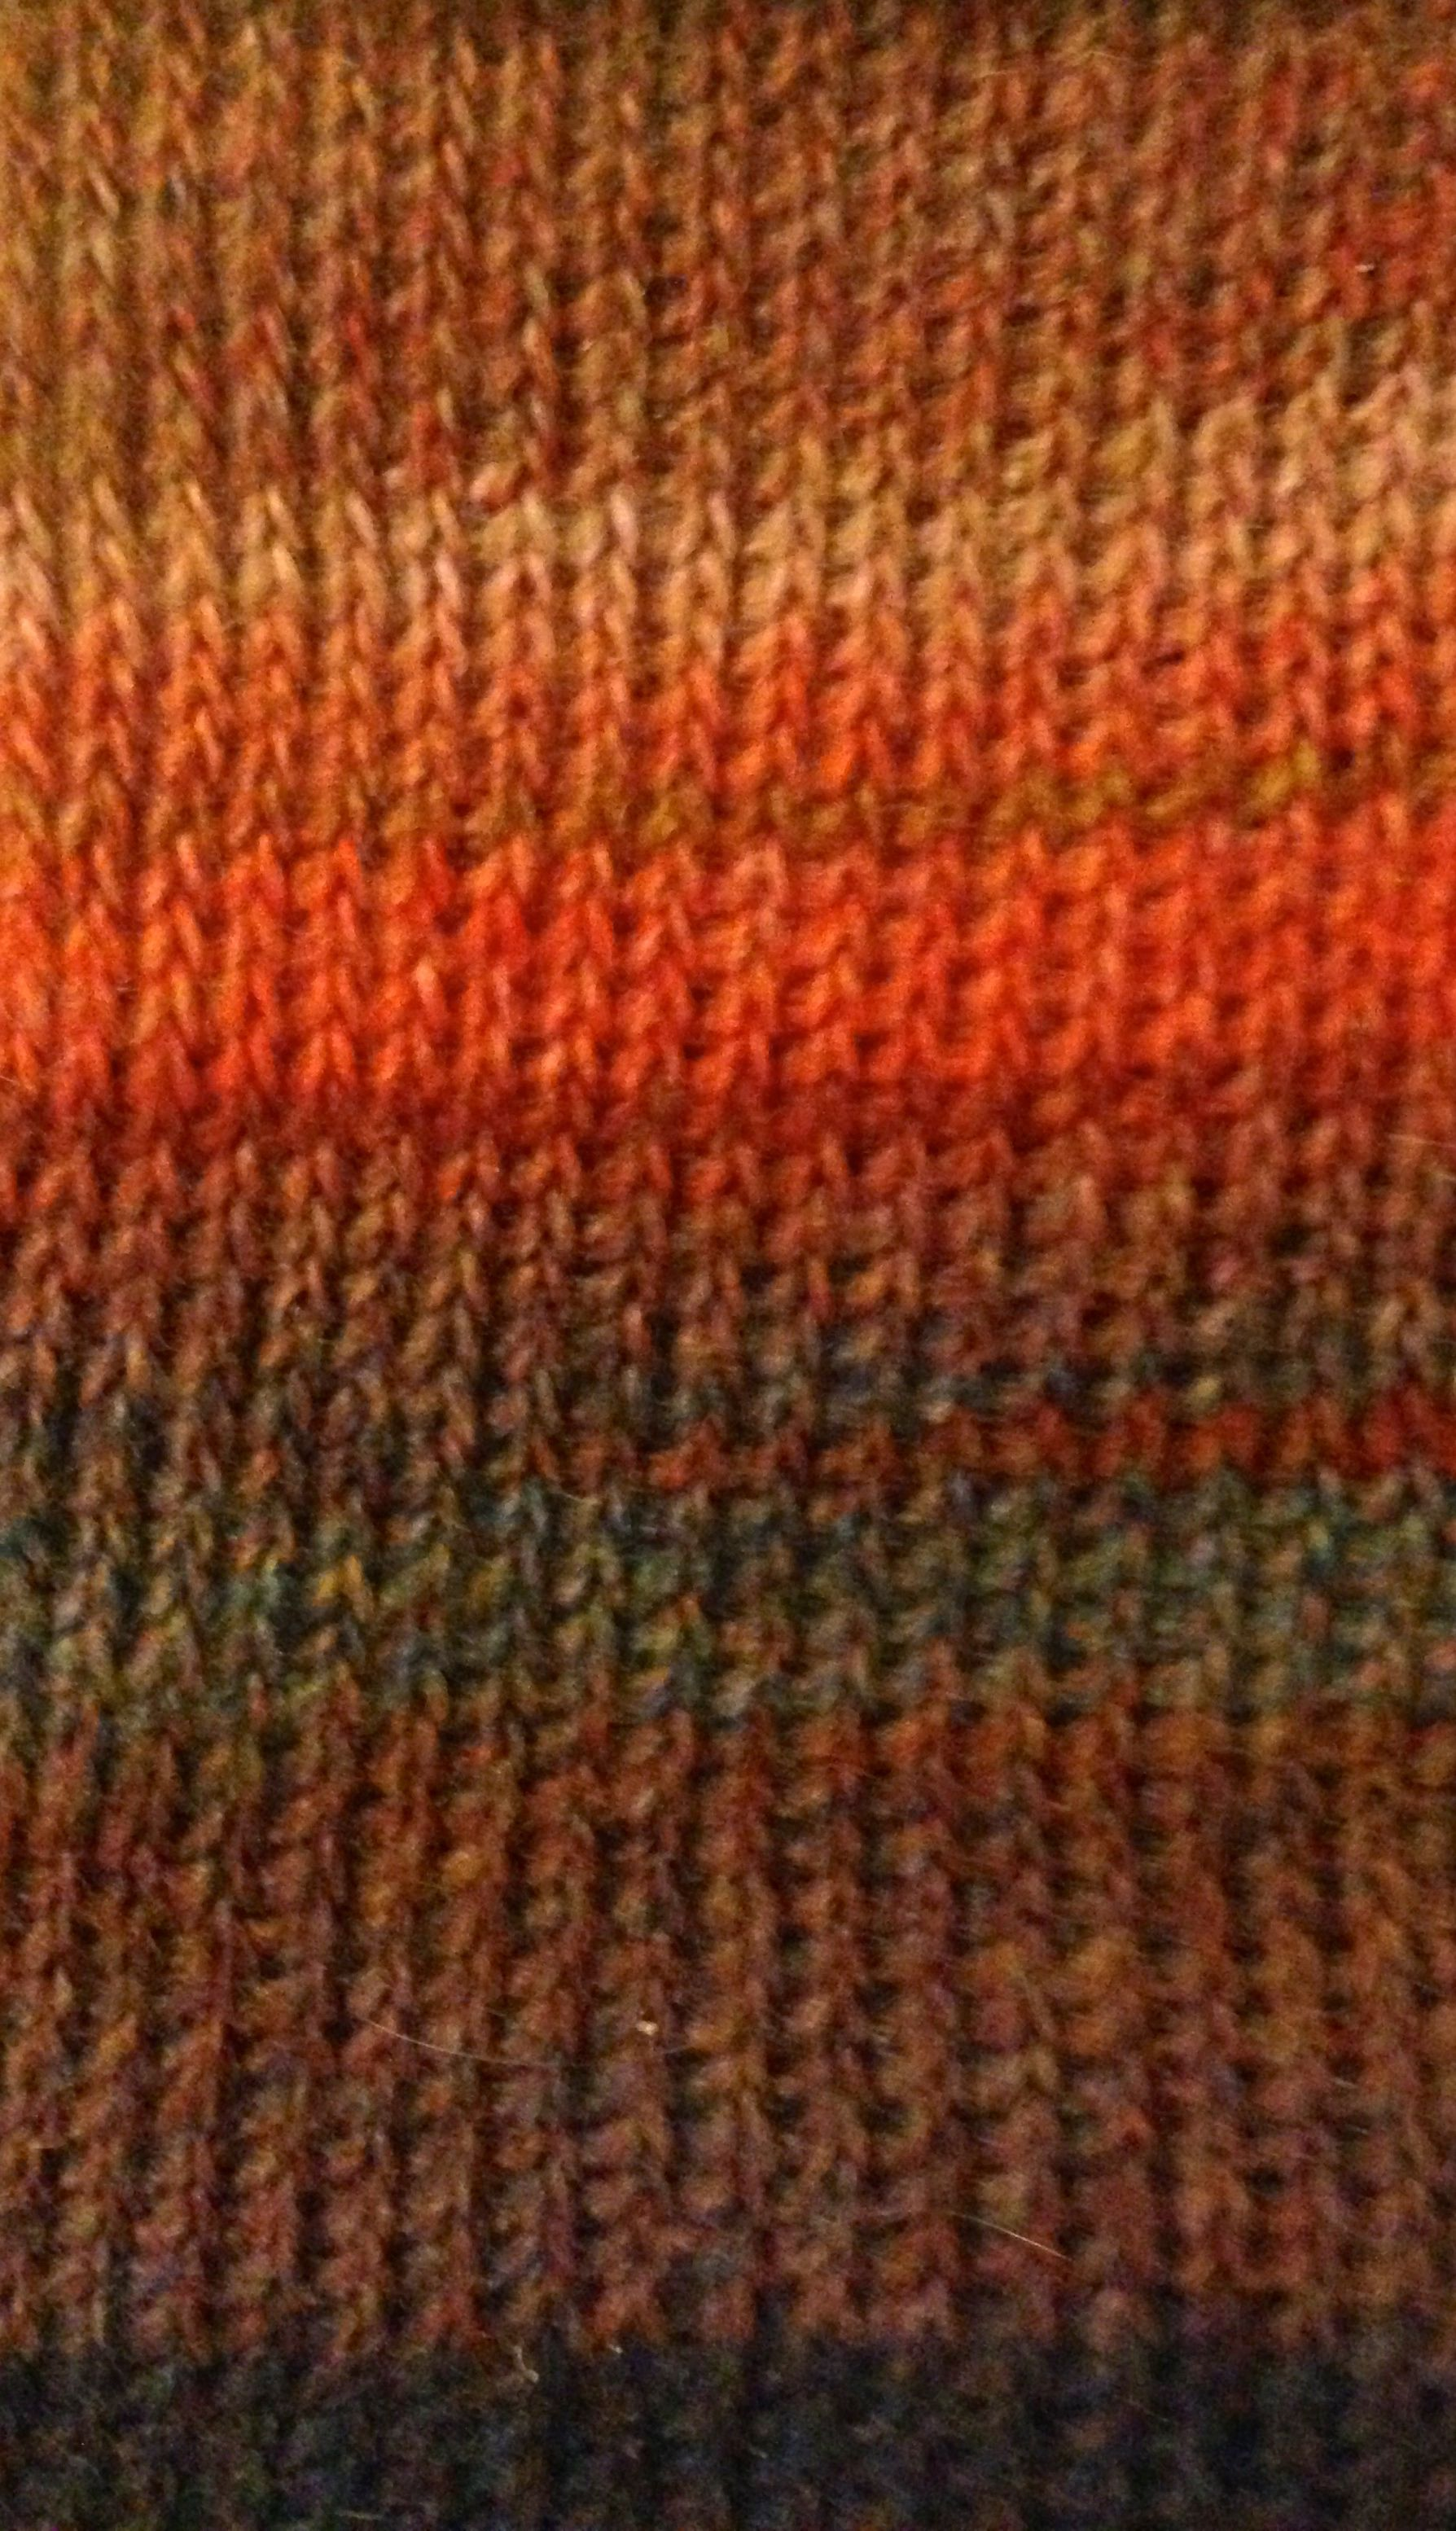 Completed swatch of Tunisian knit stitch in color-changing yarn ...